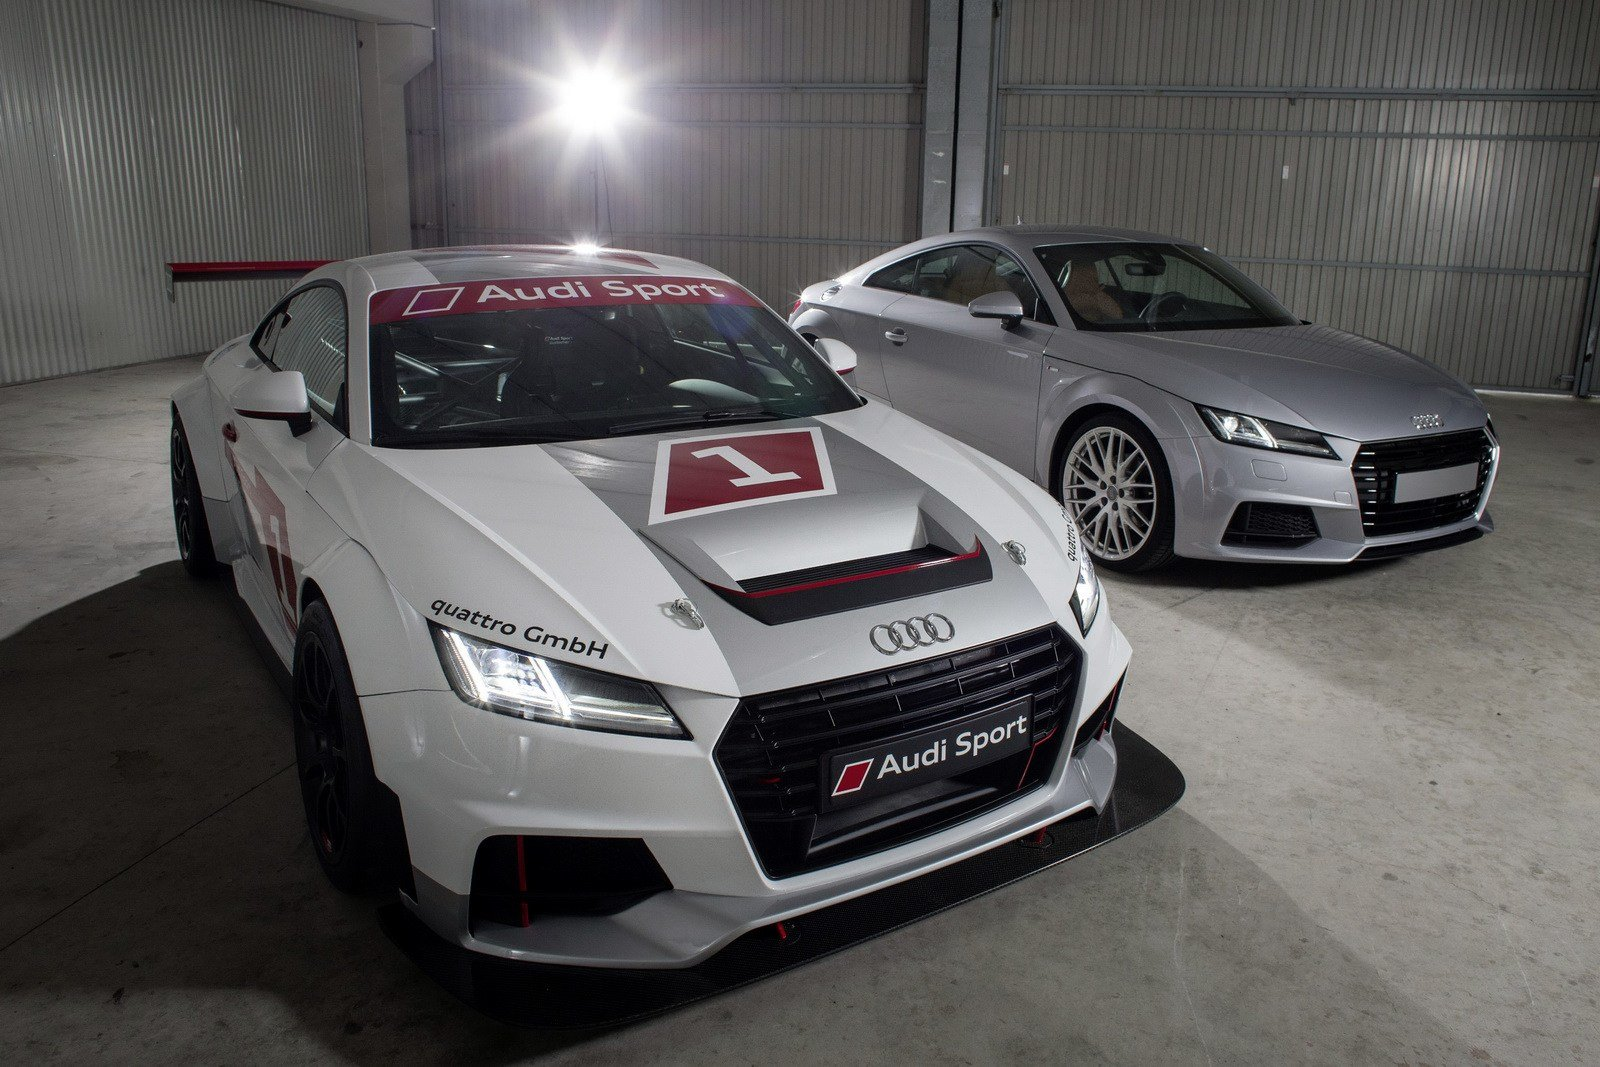 Latest Audi Tt Race Car Looks Sweet W Video Carscoops Free Download